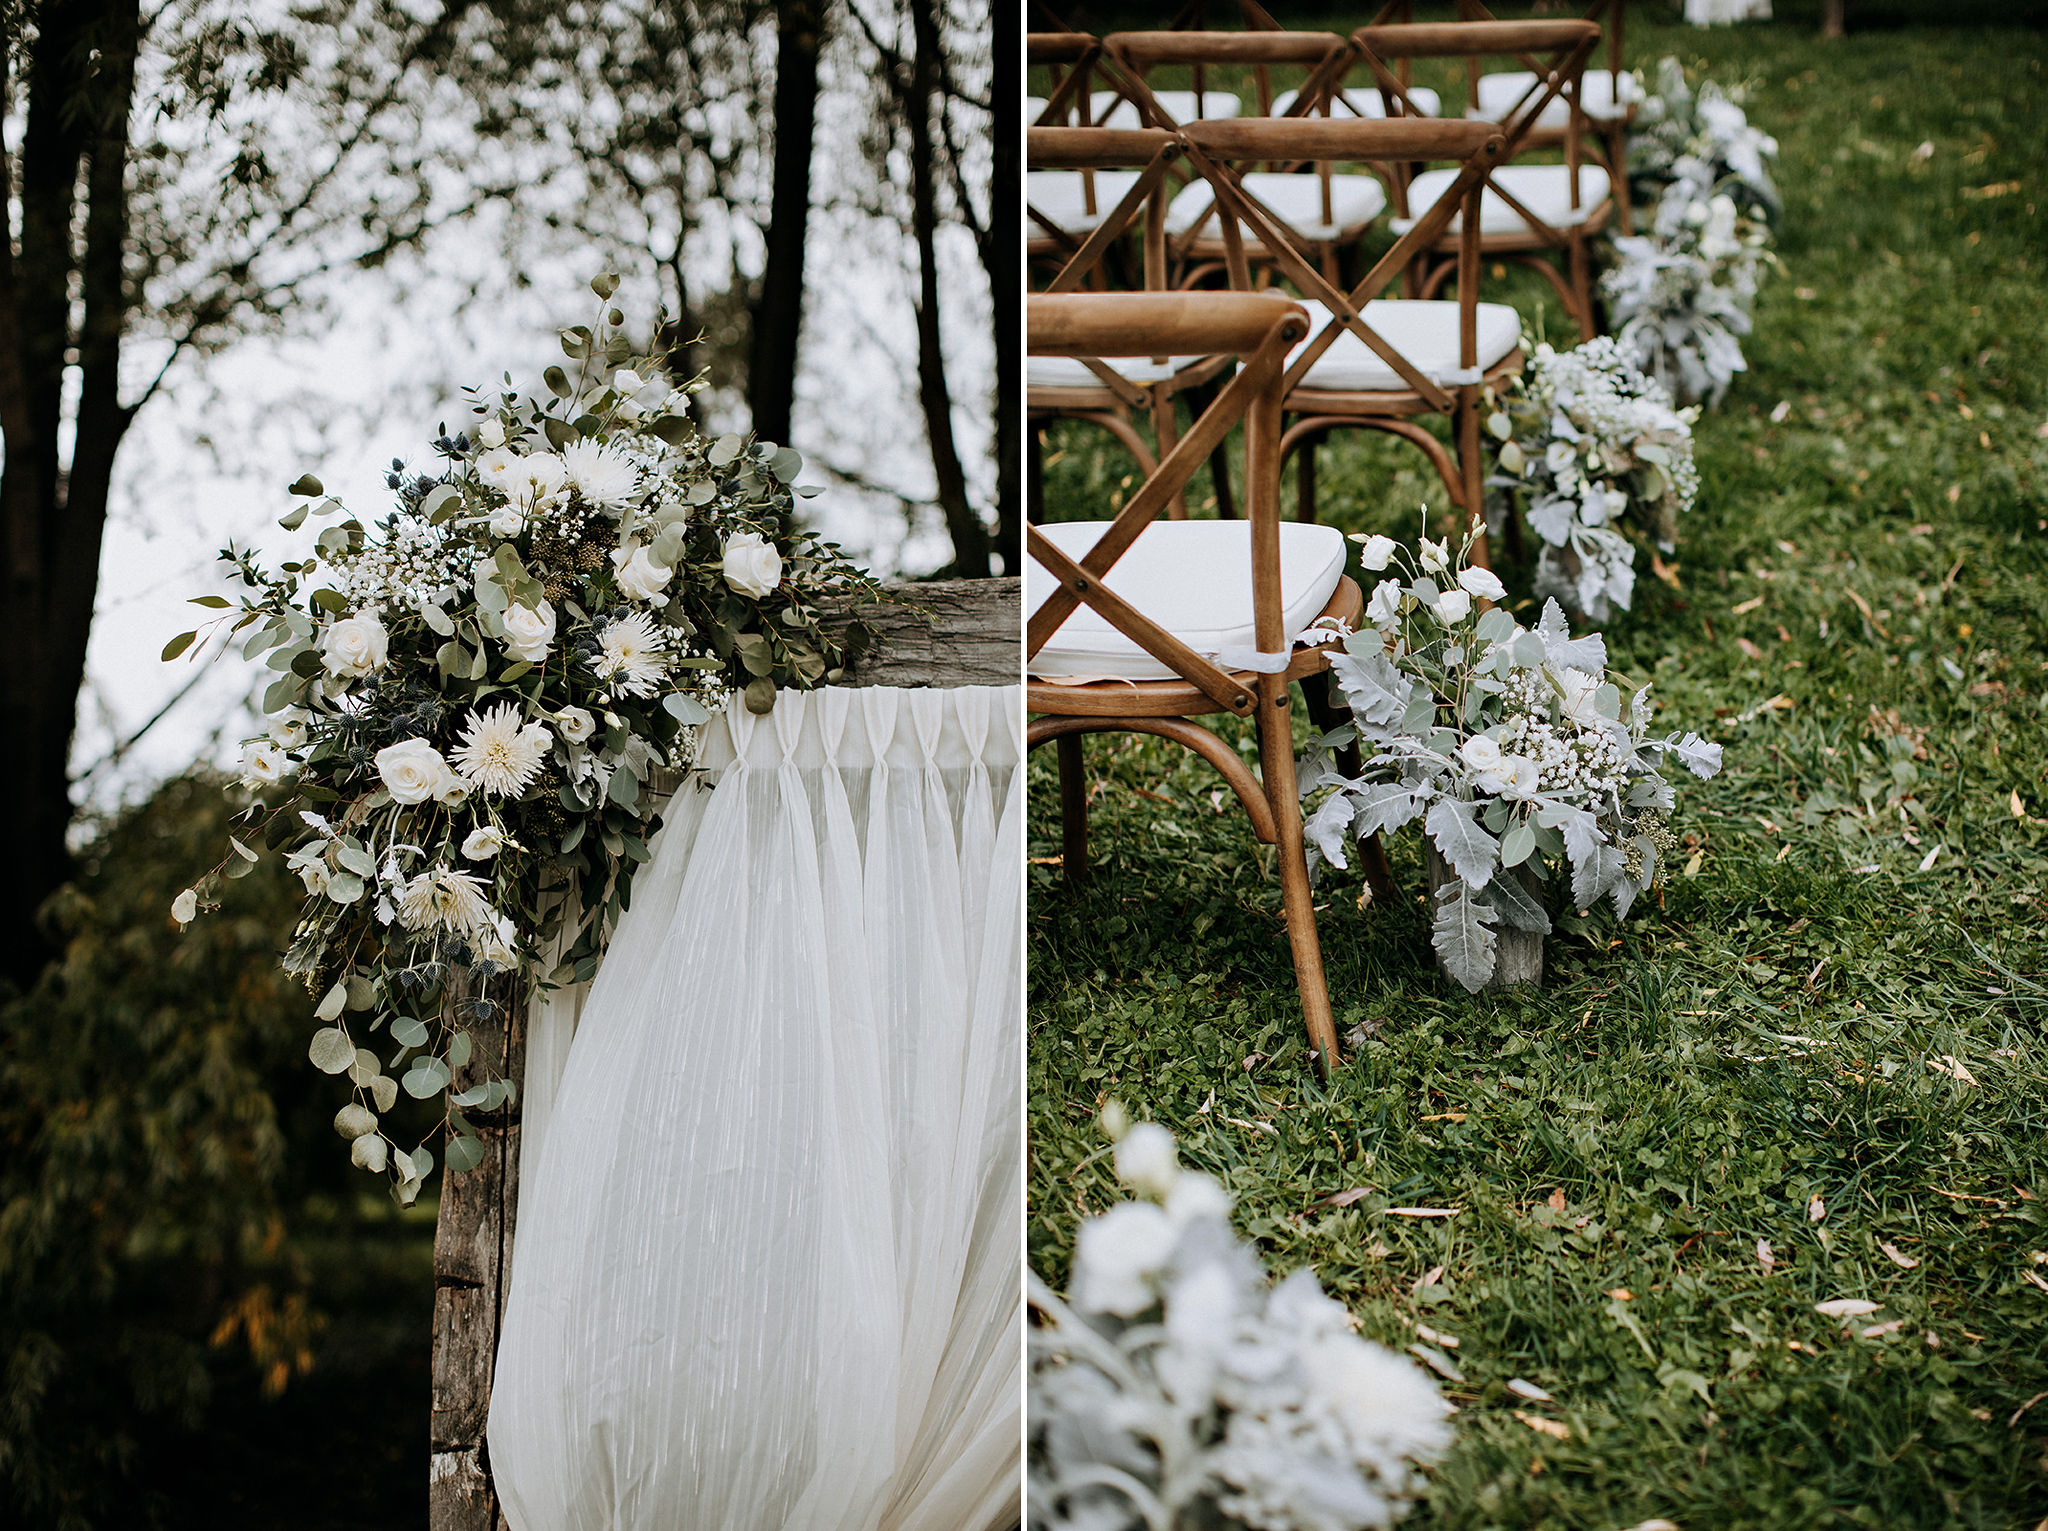 blush and white wedding flowers at outdoor ceremony in meaford